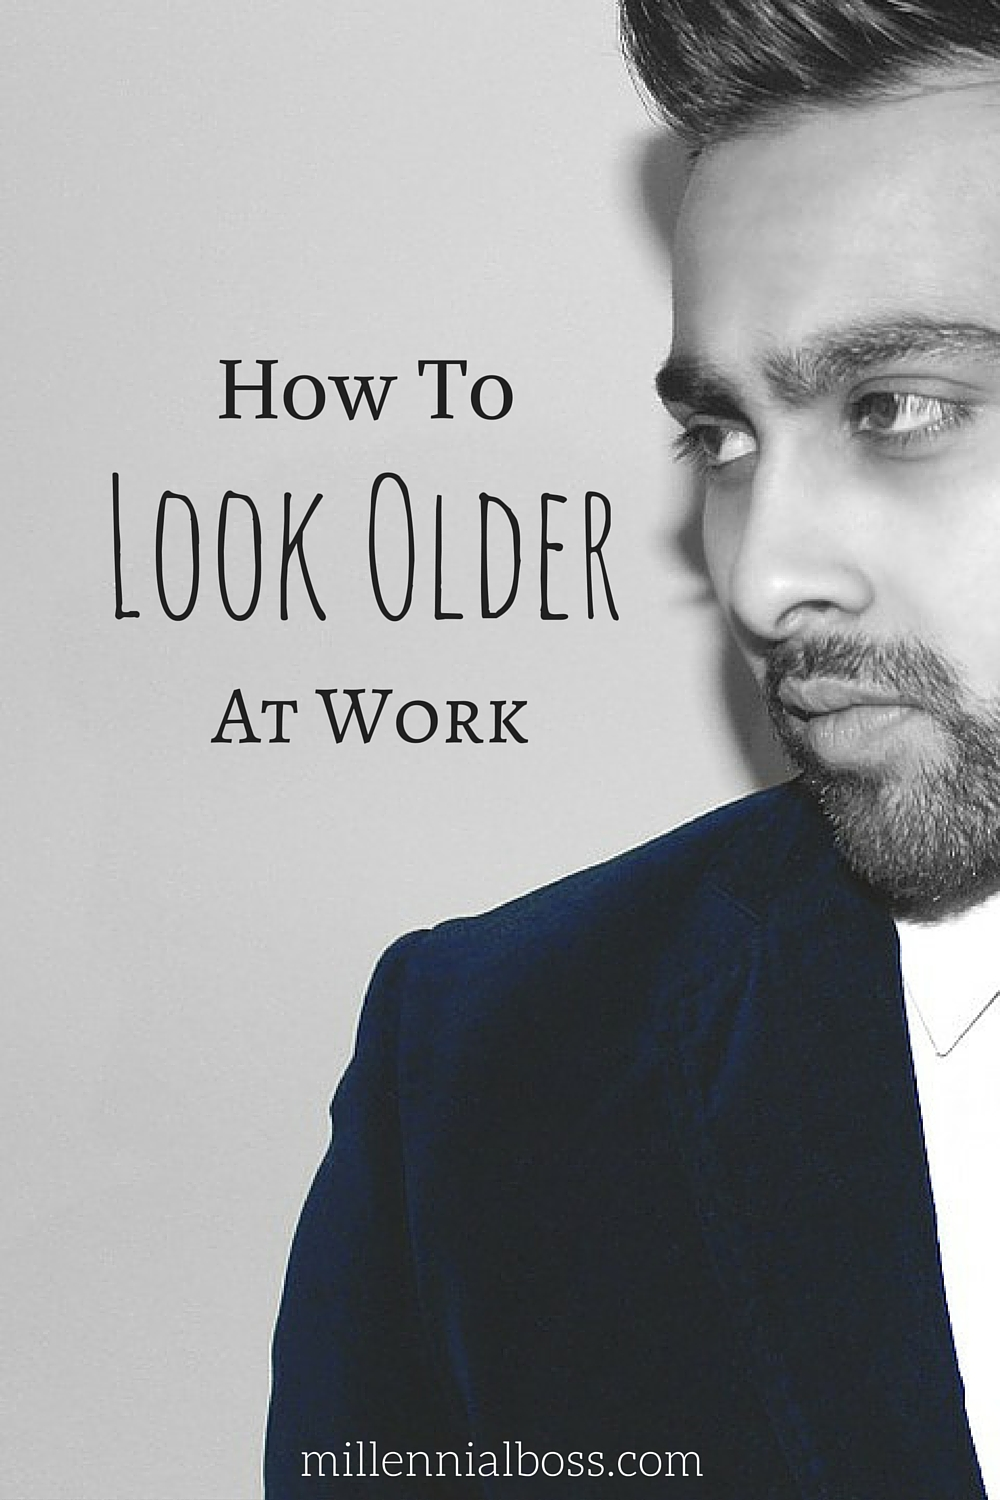 How to Look Older at Work